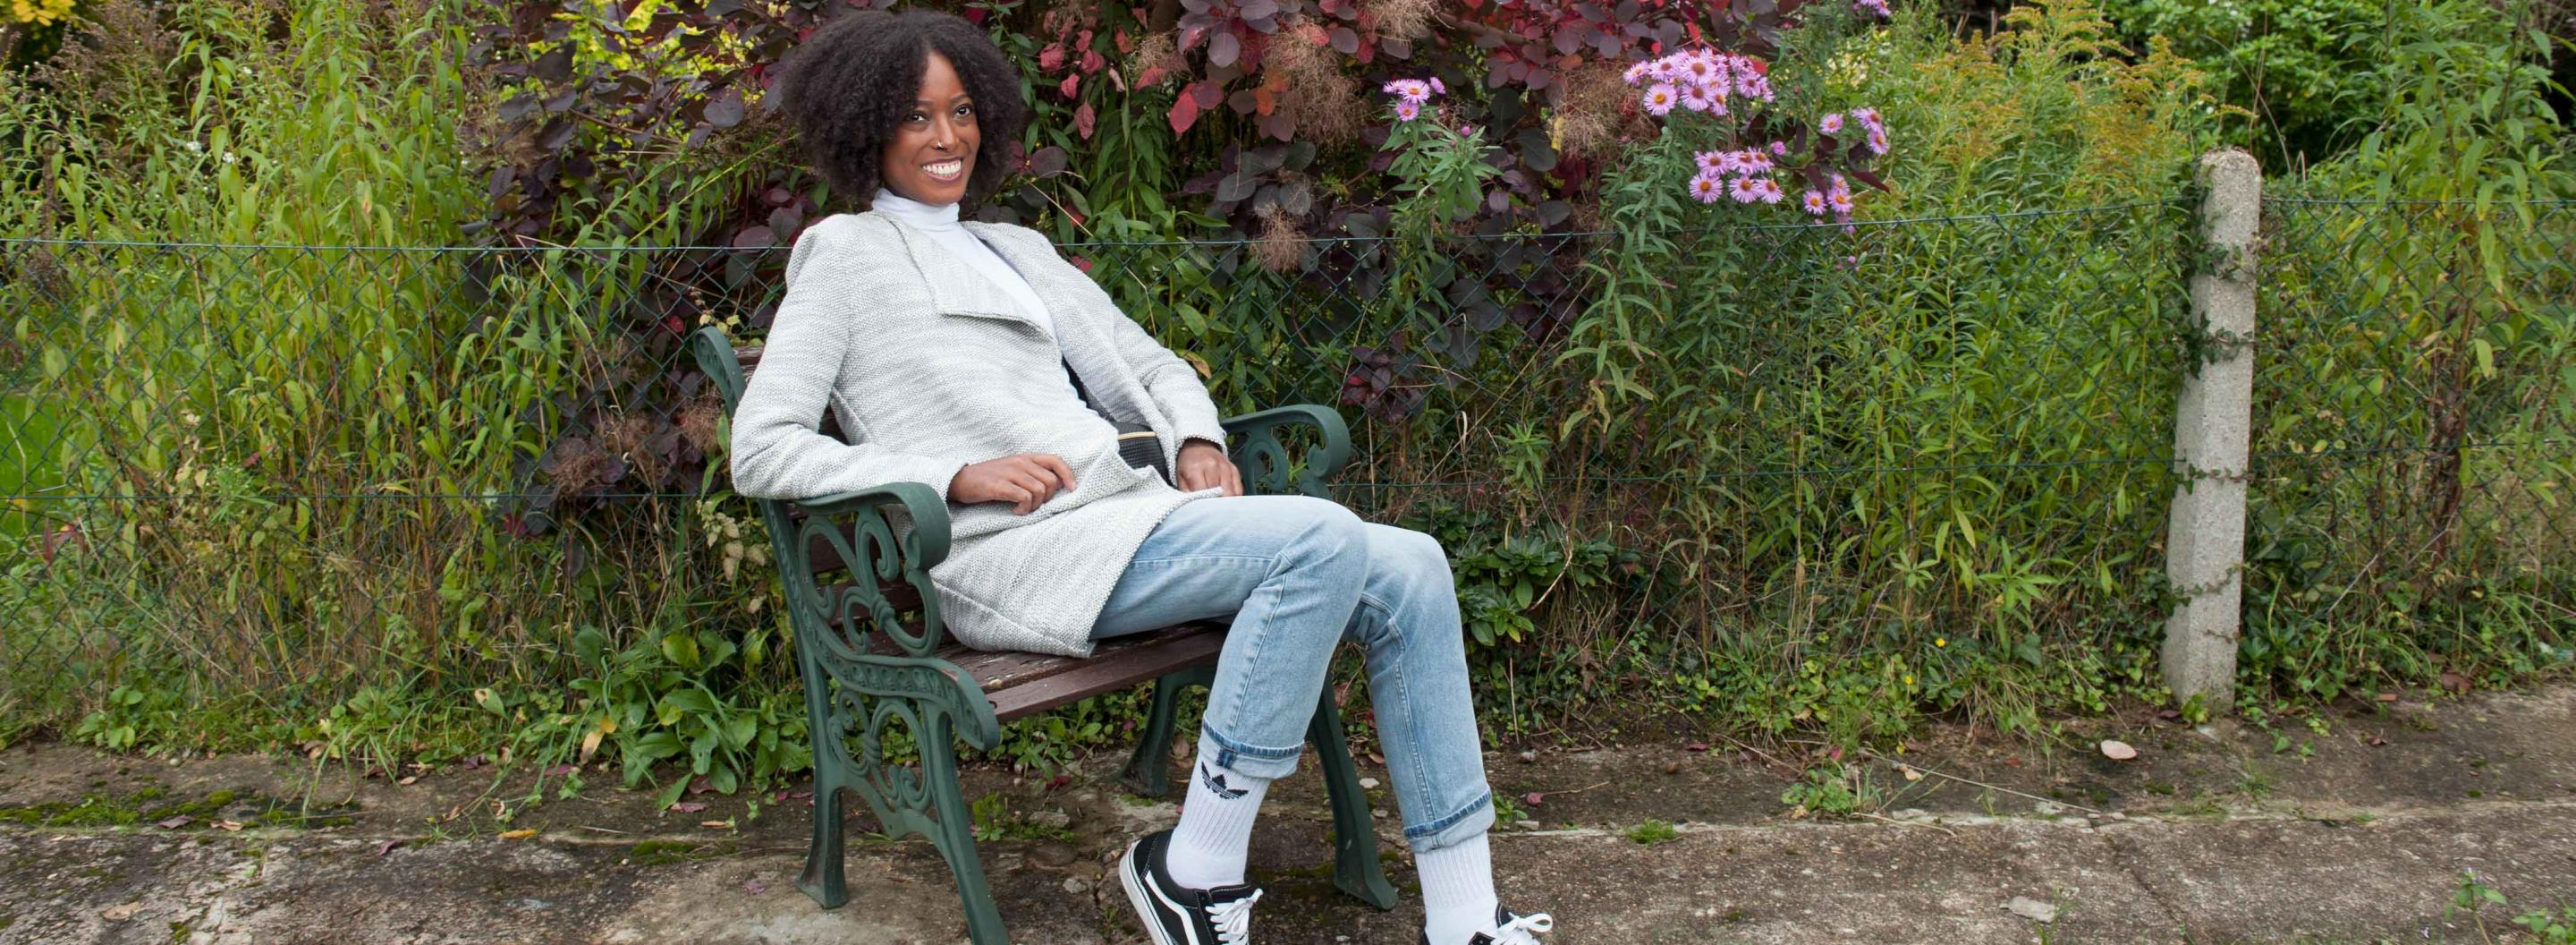 Woman with scleroderma on bench